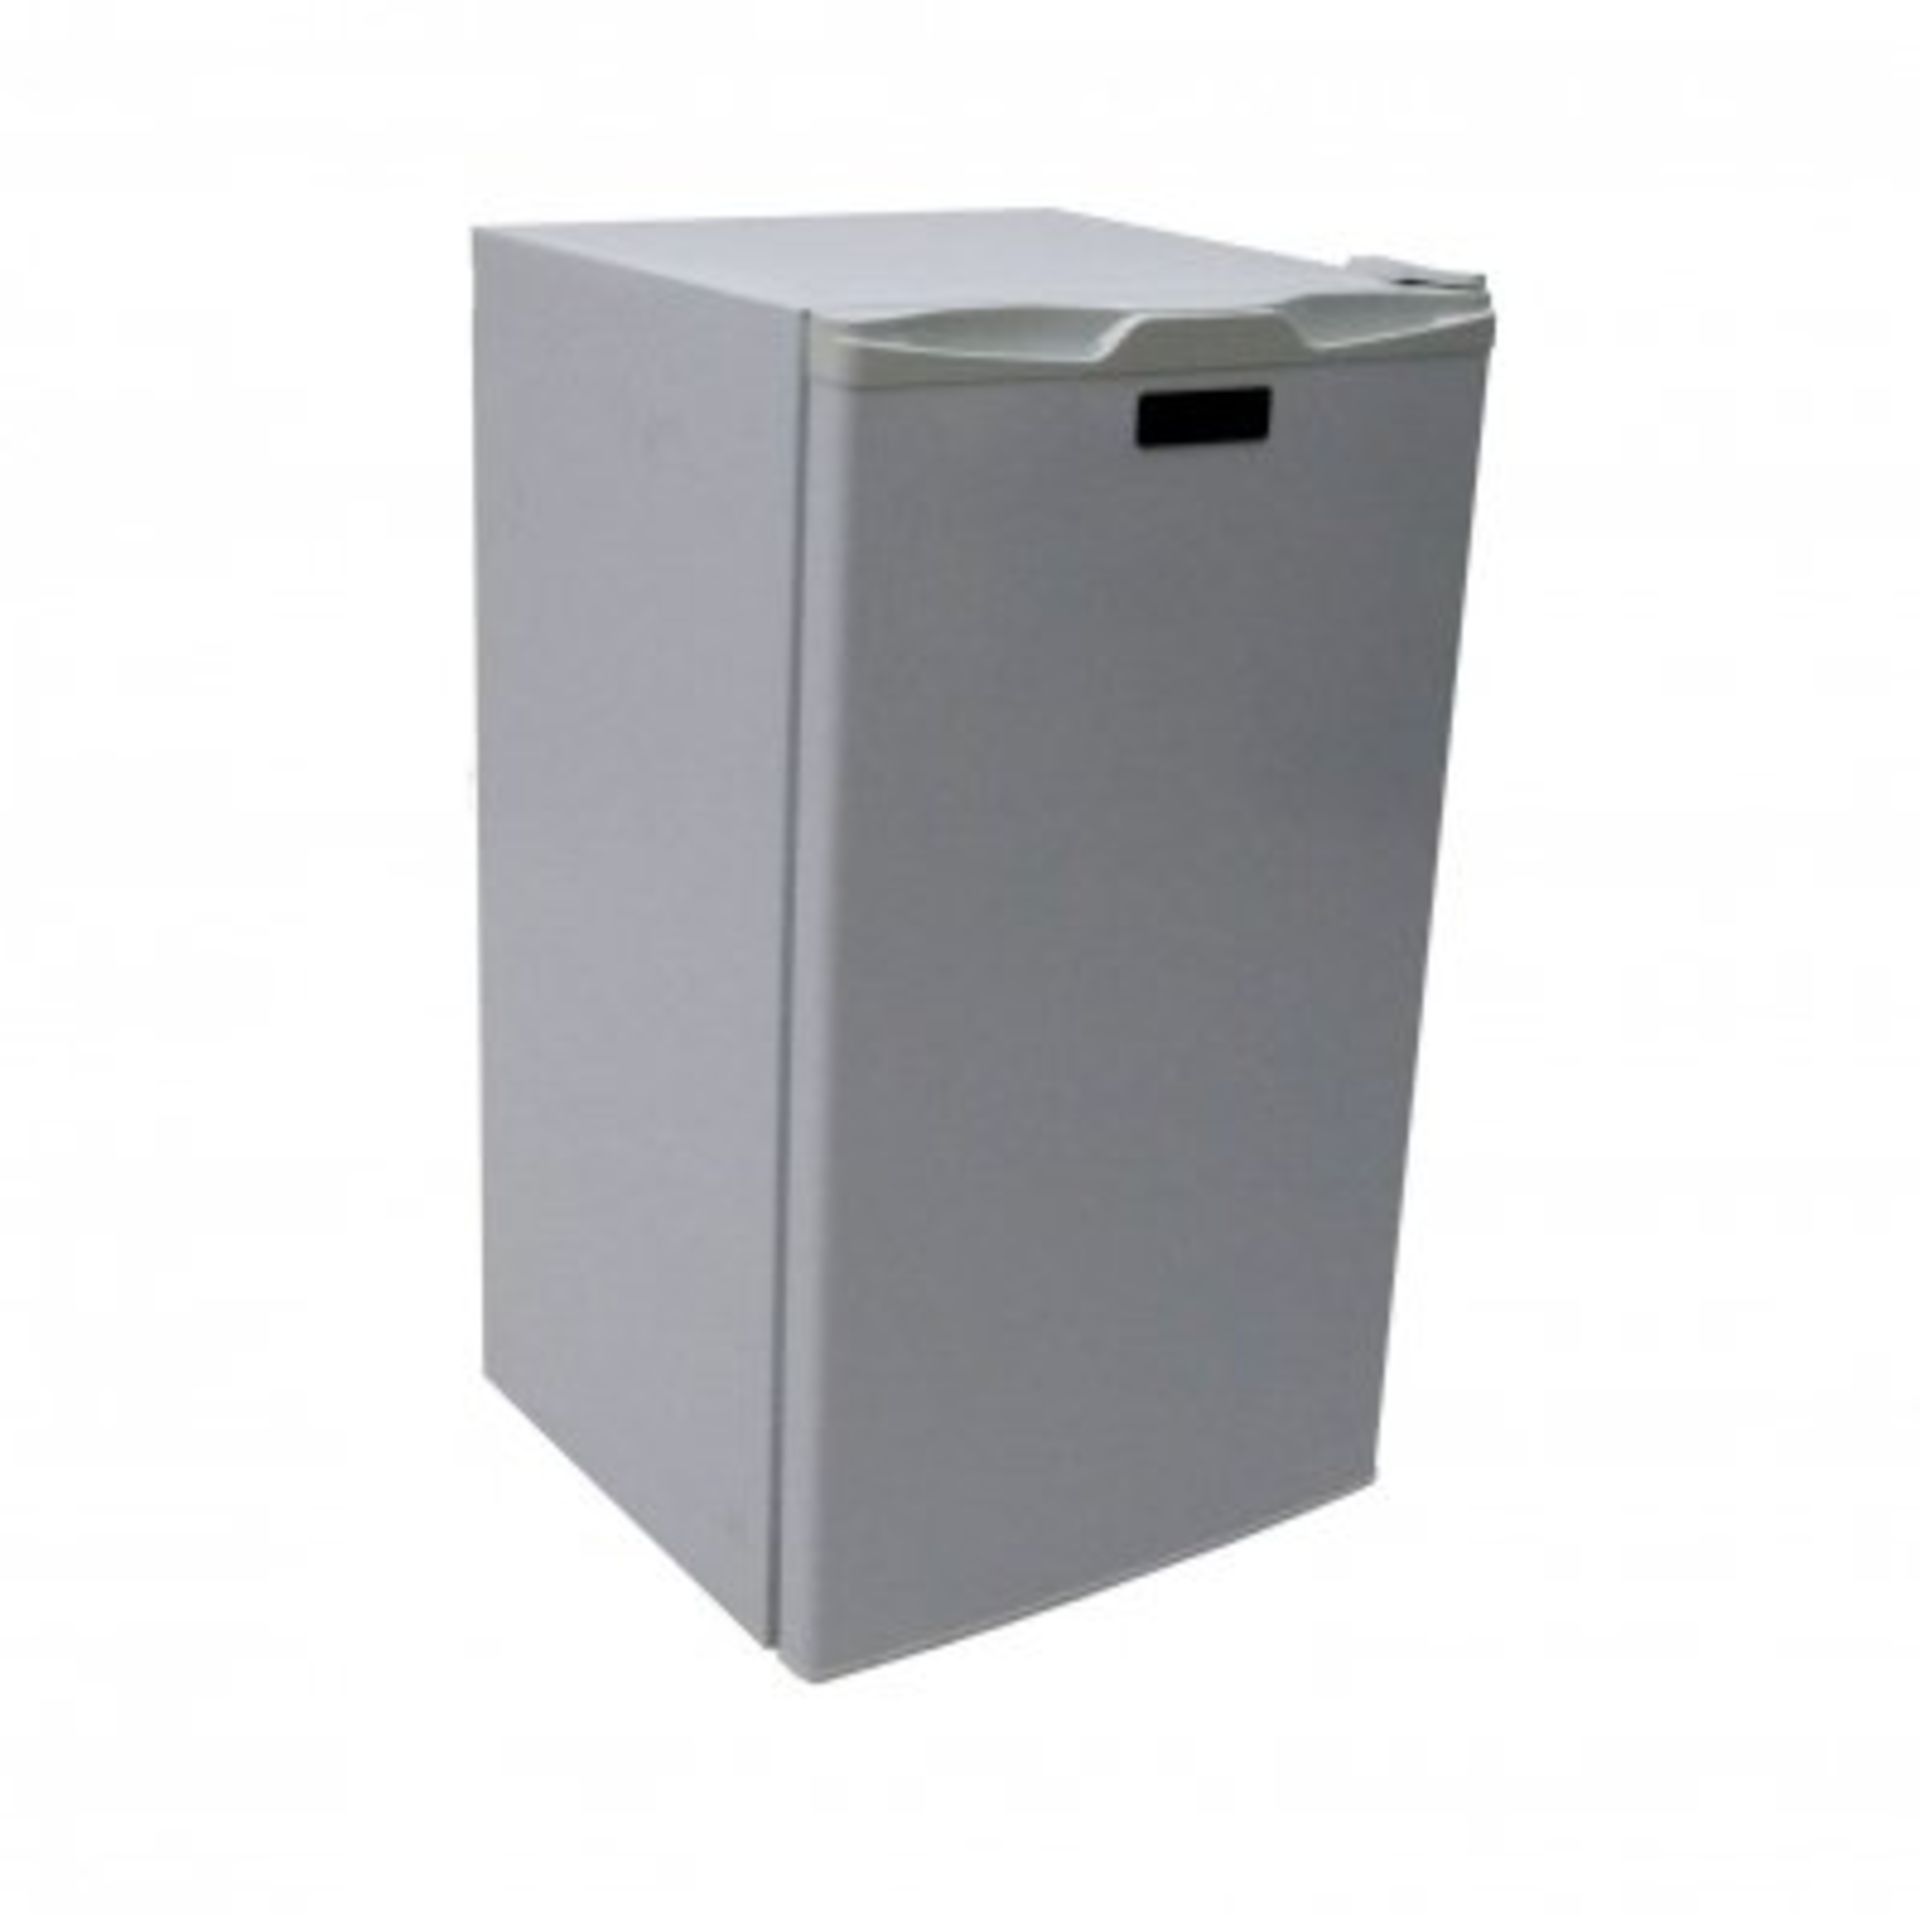 Lot 1 - (RU1) The under counter 90L fridge offers a space saving compact design with all the top qualit...